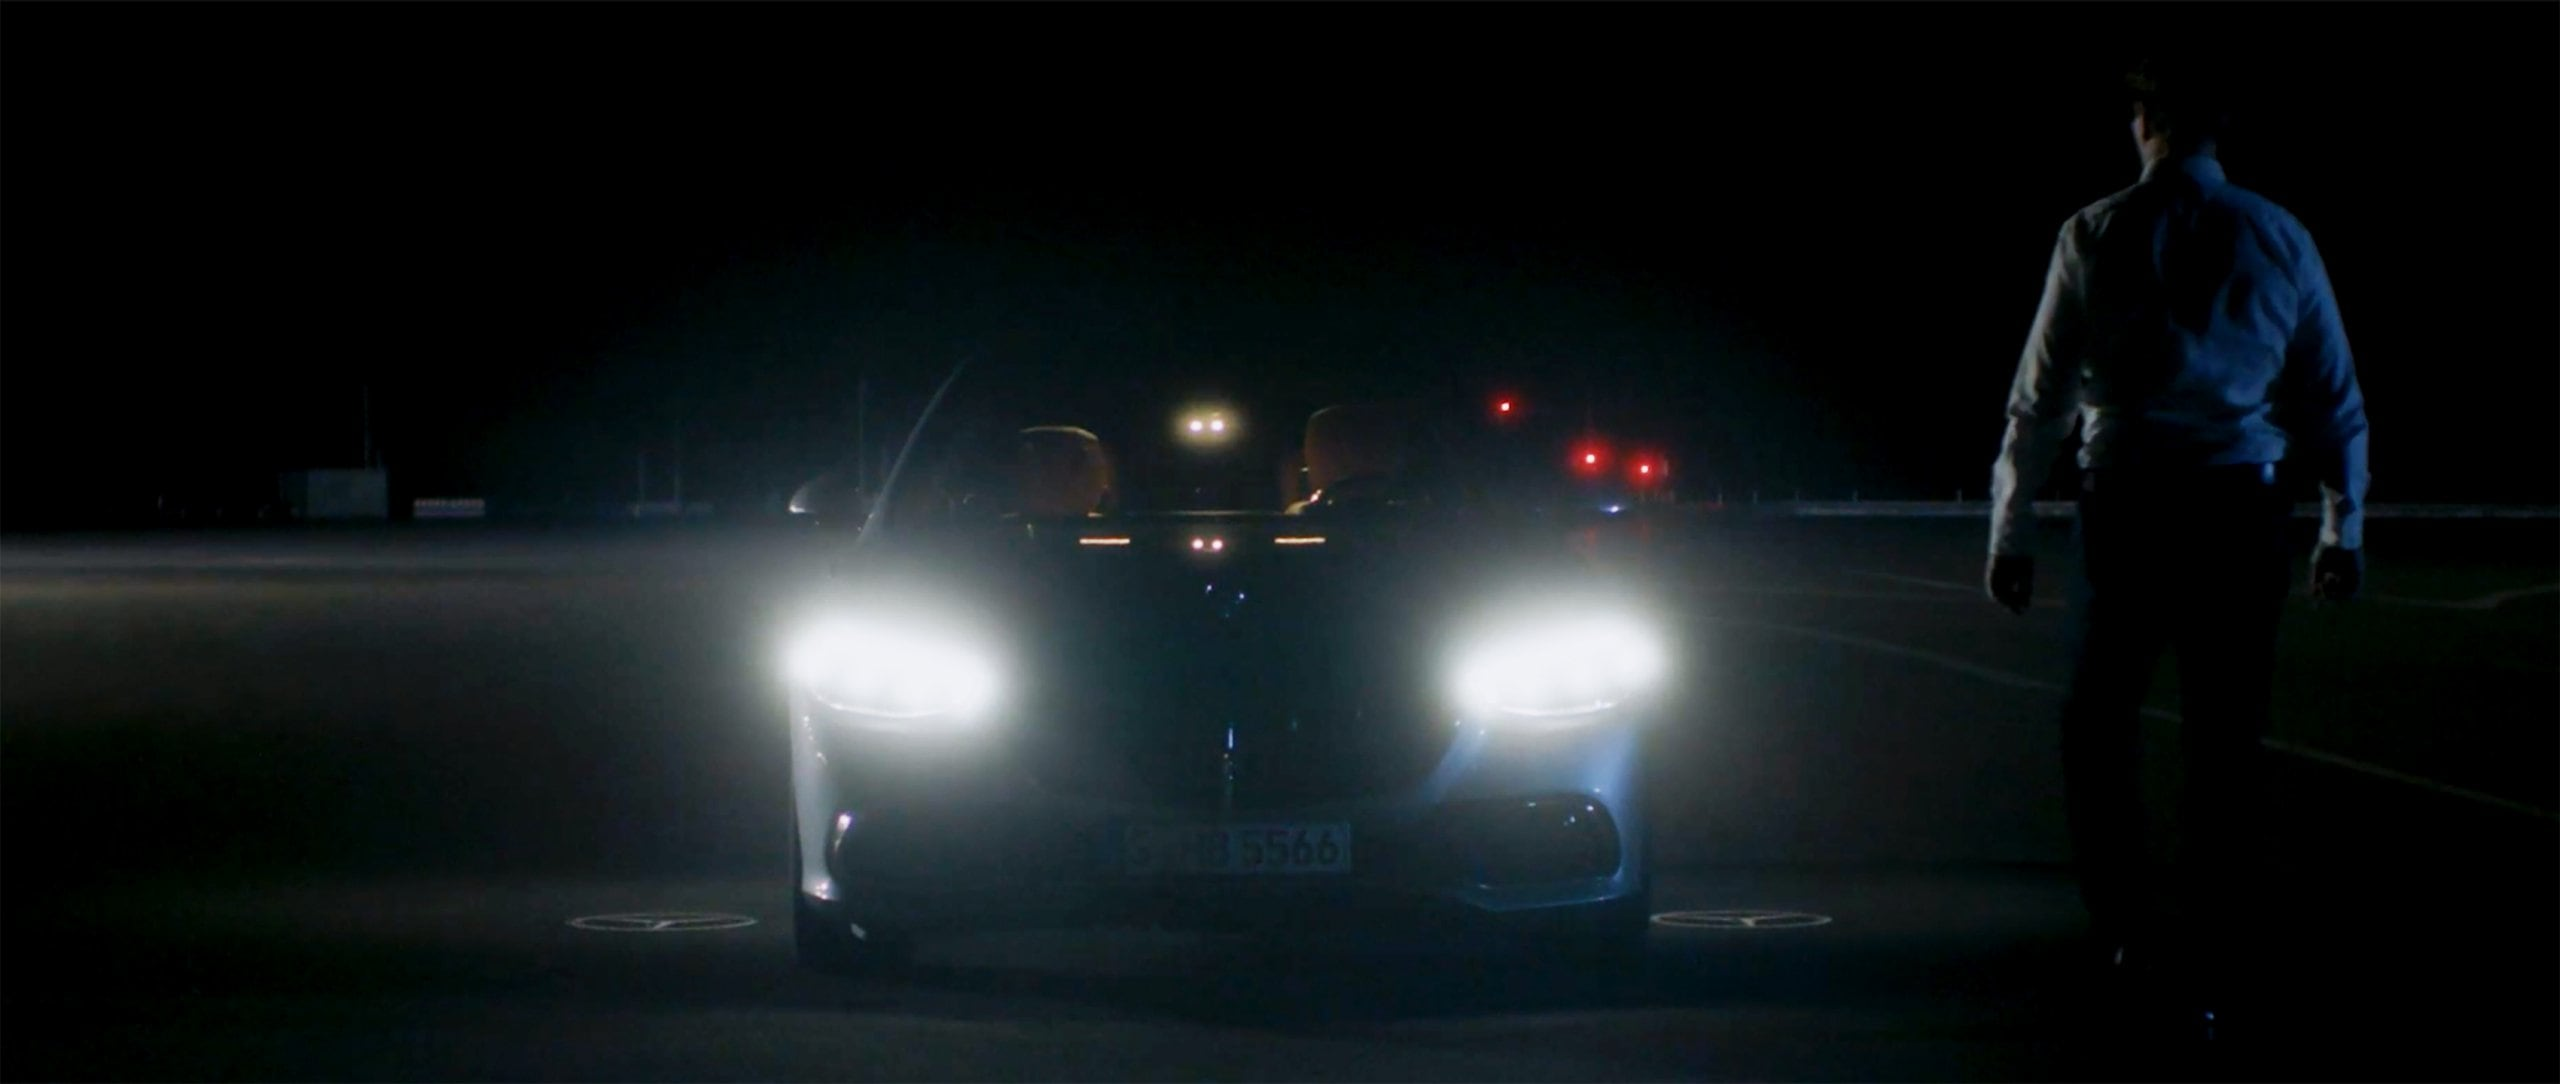 Ola Källenius walks towards the 2020 Mercedes-Benz S-Class at night.